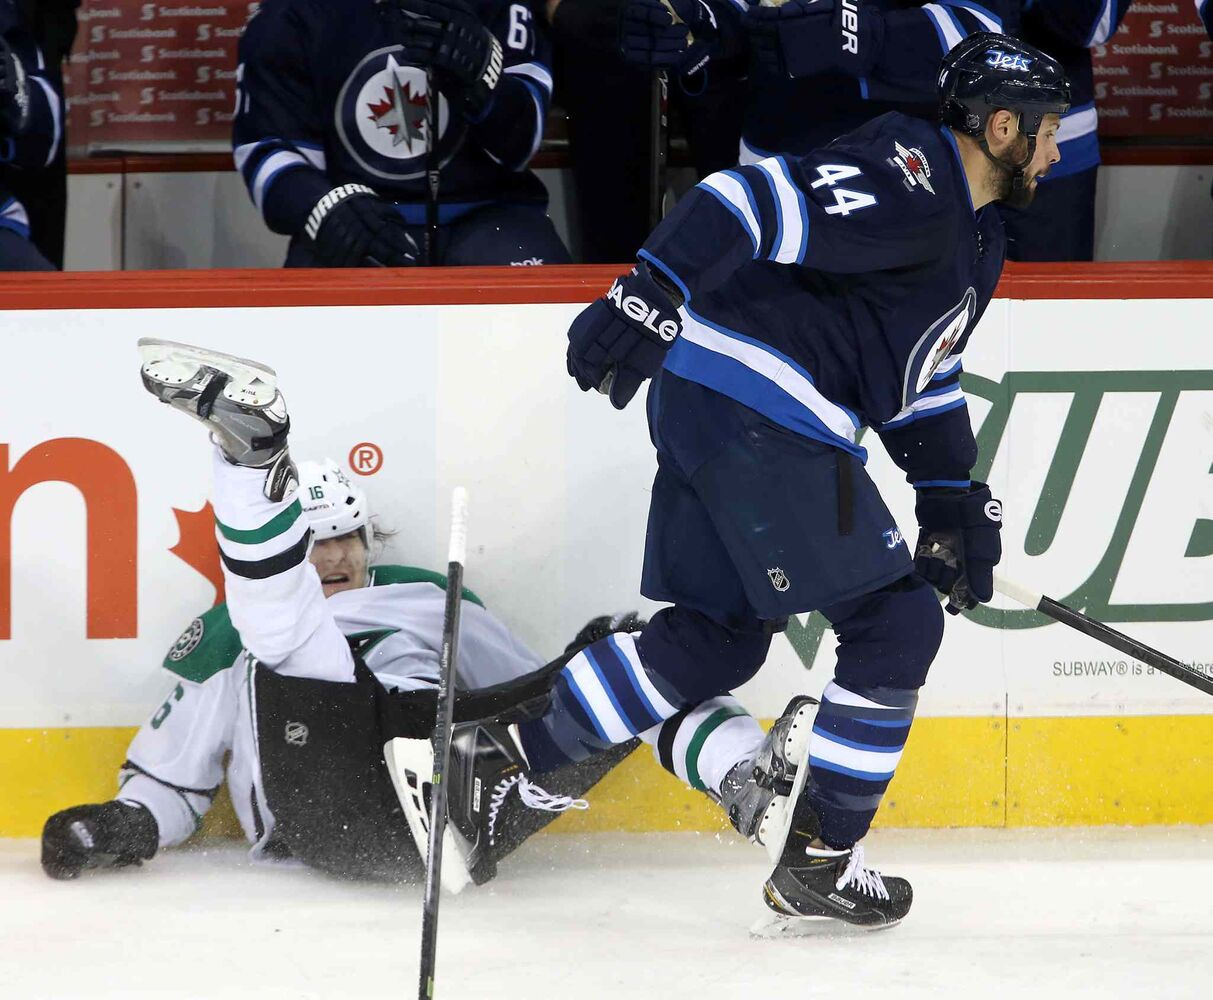 Dallas Stars forward Ryan Garbutt is pasted into the boards by Winnipeg Jets defenceman Zach Bogosian in the first period. (TREVOR HAGAN / THE CANADIAN PRESS)